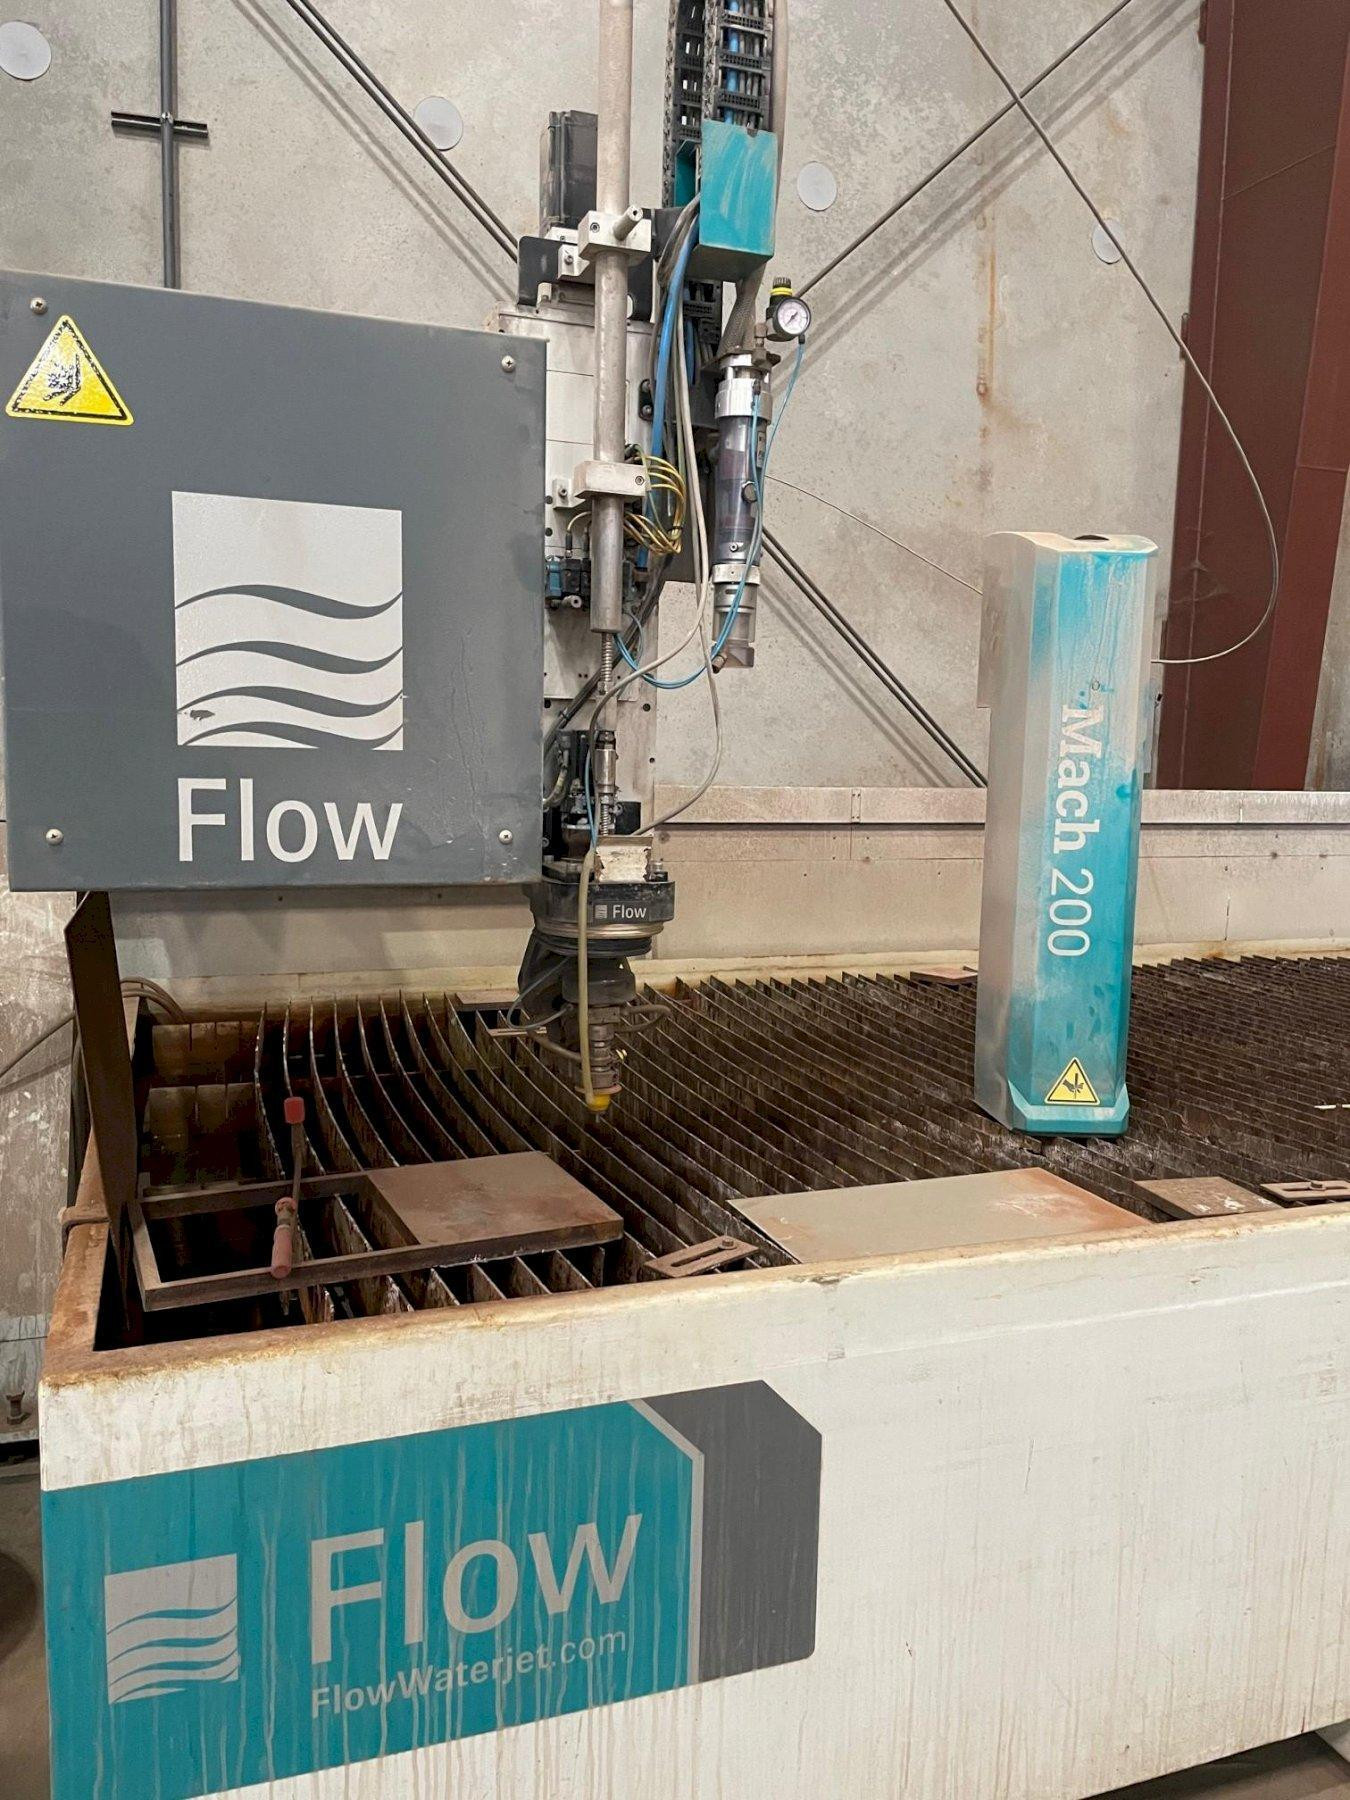 FLOW2018 Flow with 5-Axis Head